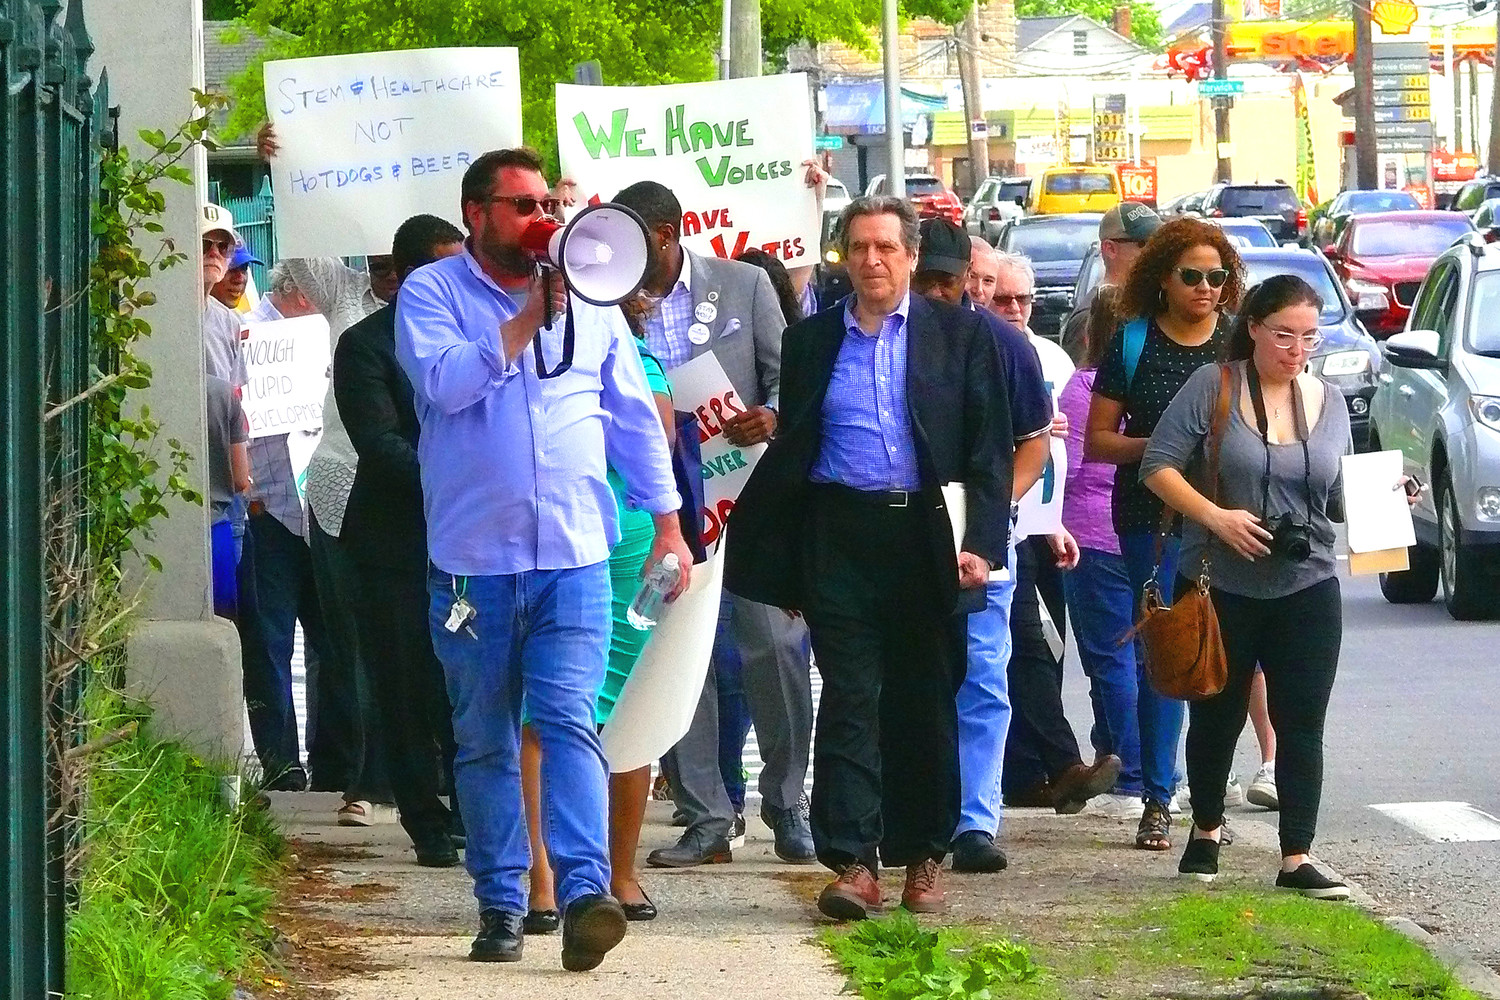 Matthew Sexton, with bullhorn, and attorney Norman Siegel, center, lead marchers along Hempstead Turnpike in Sunday's demonstration against the Belmont Park Arena.